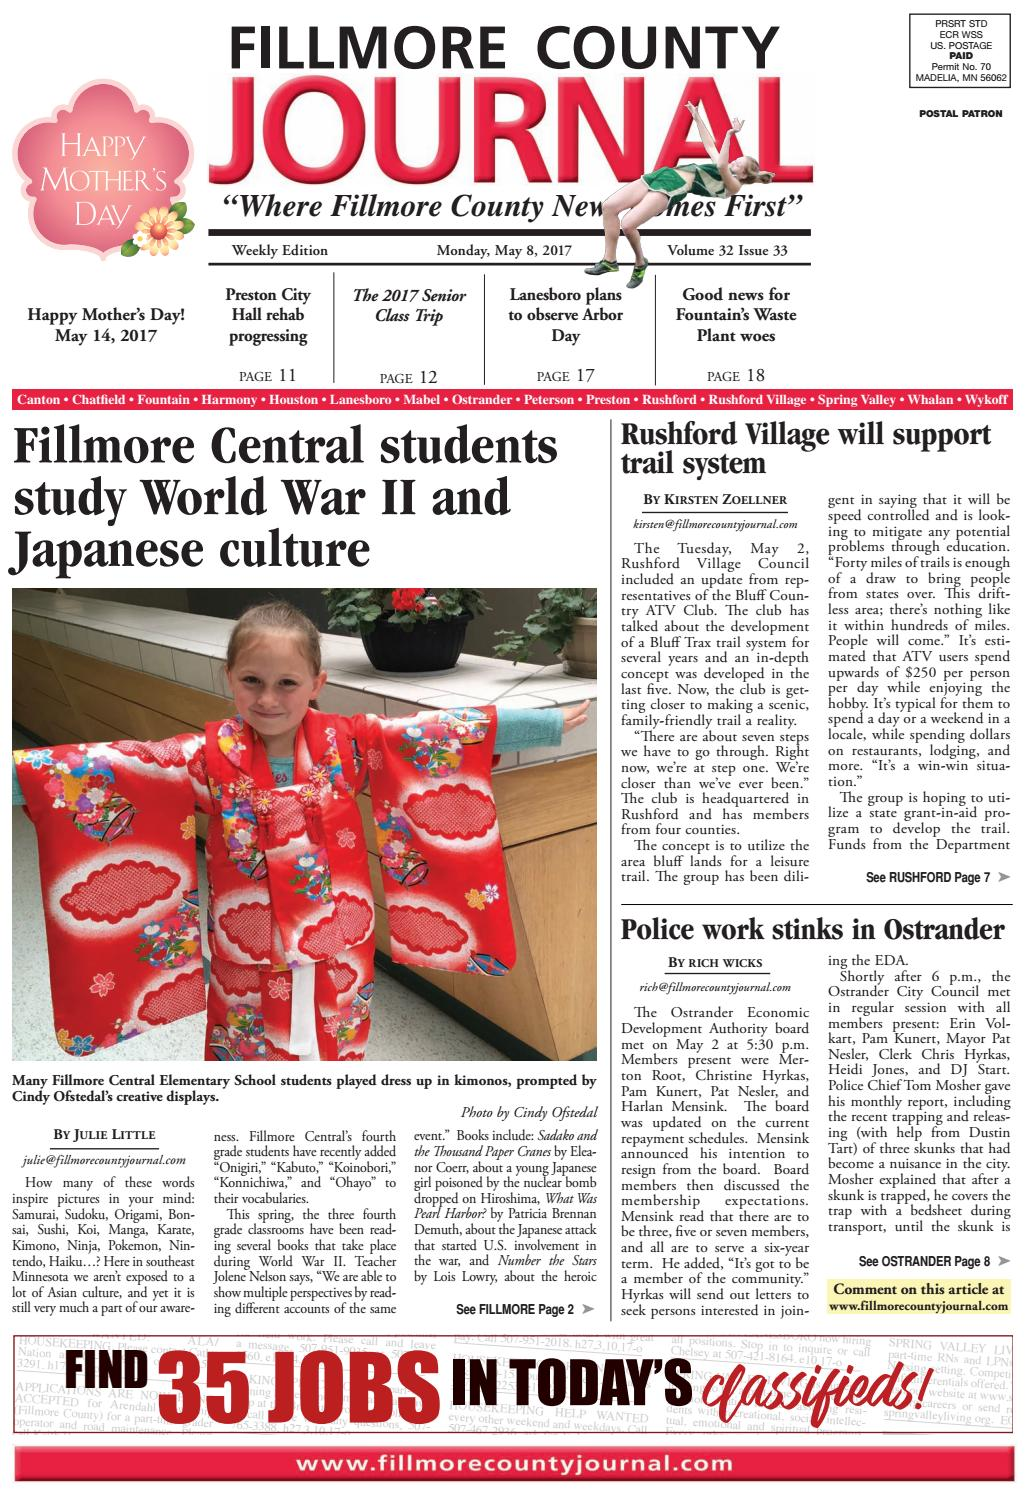 Fillmore County Journal - 5.8.17 by Jason Sethre - issuu